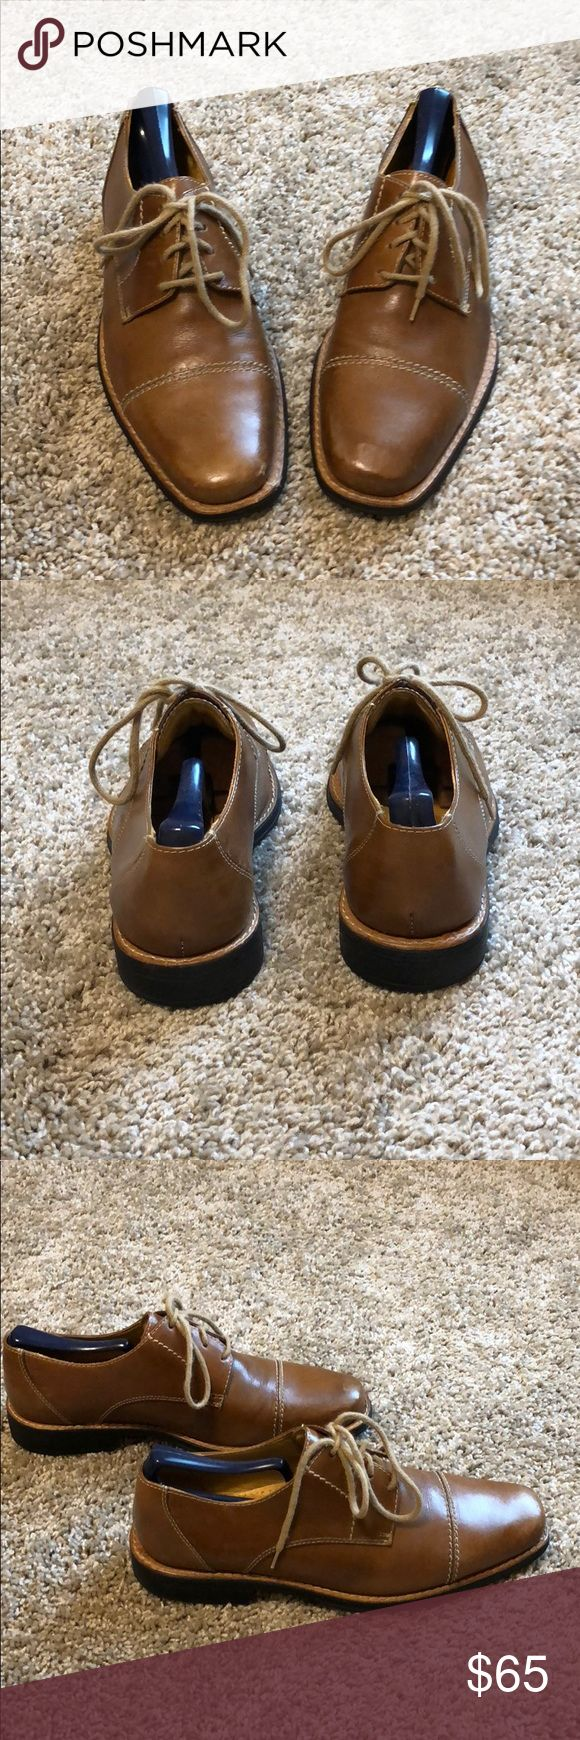 Sandro Moscoloni Elbert Captoe Derby shoes Excellent used condition, minor scuffs, minimal wear on the sole, fabulous cognac color. (Buy new for $99: https://m.shop.nordstrom.com/s/sandro-moscoloni-elbert-cap-toe-derby-men/4704515) Sandro Moscoloni Shoes